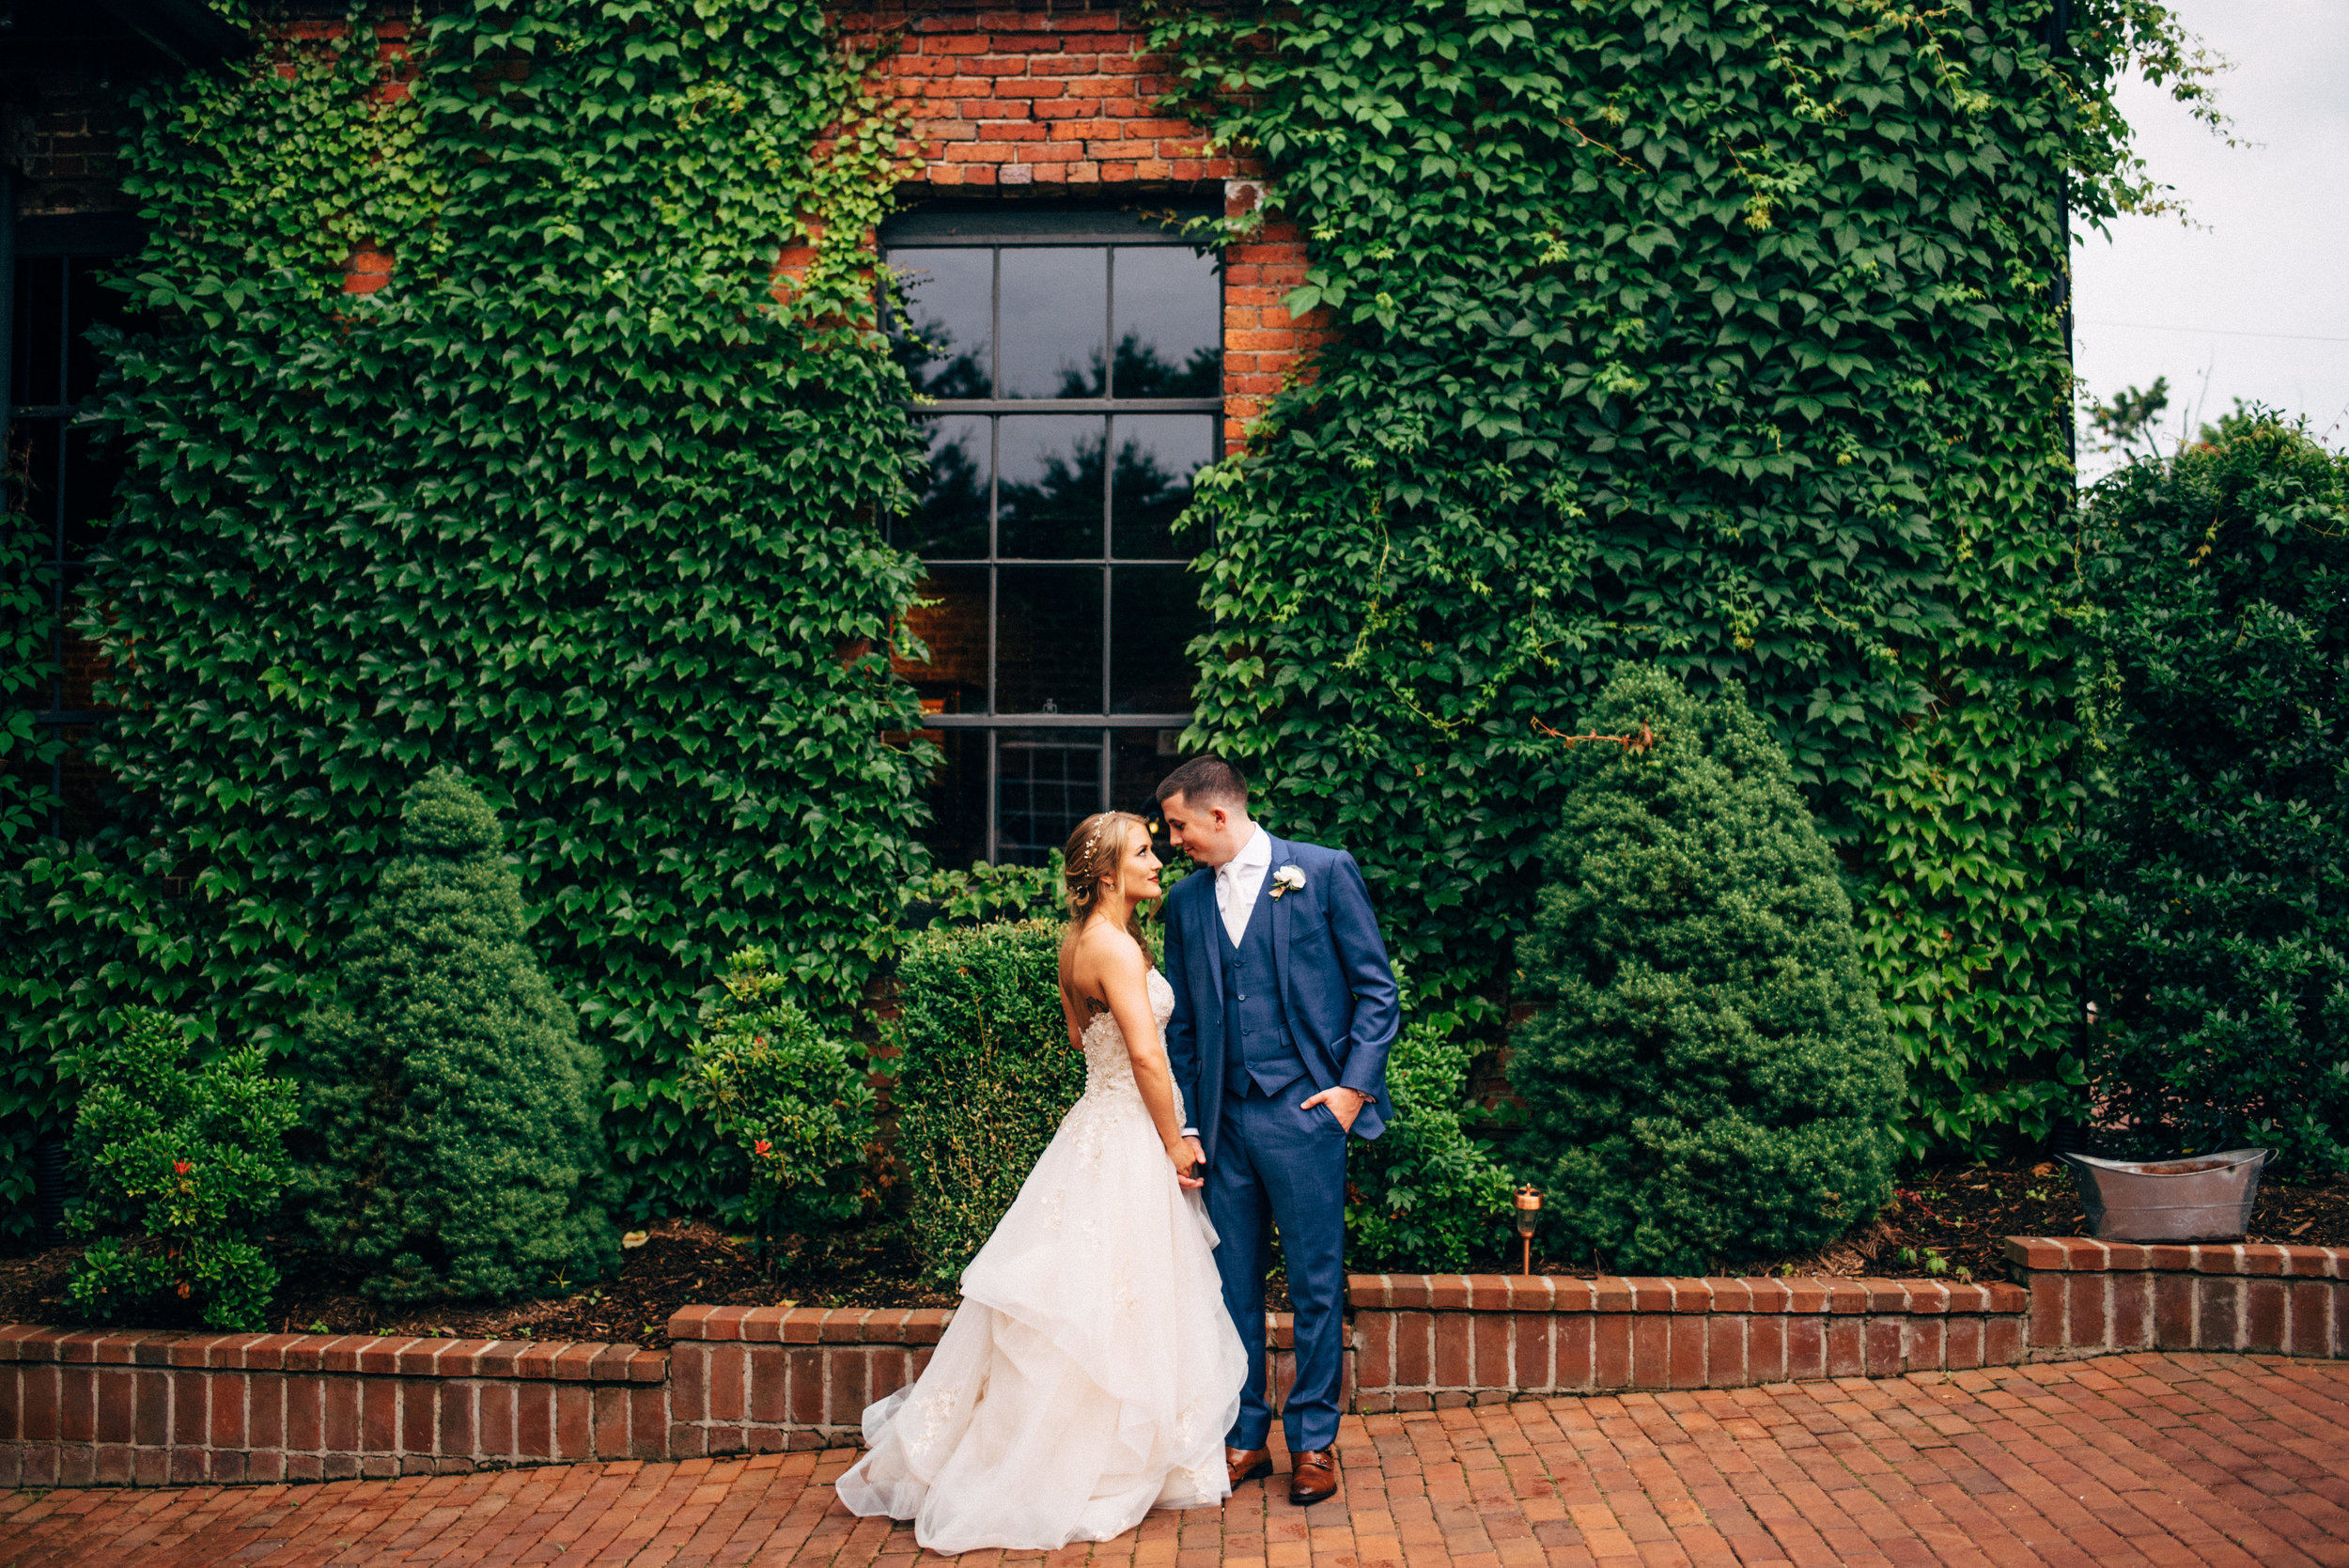 bride and groom looking into each other's eyes in front of ivy covered building